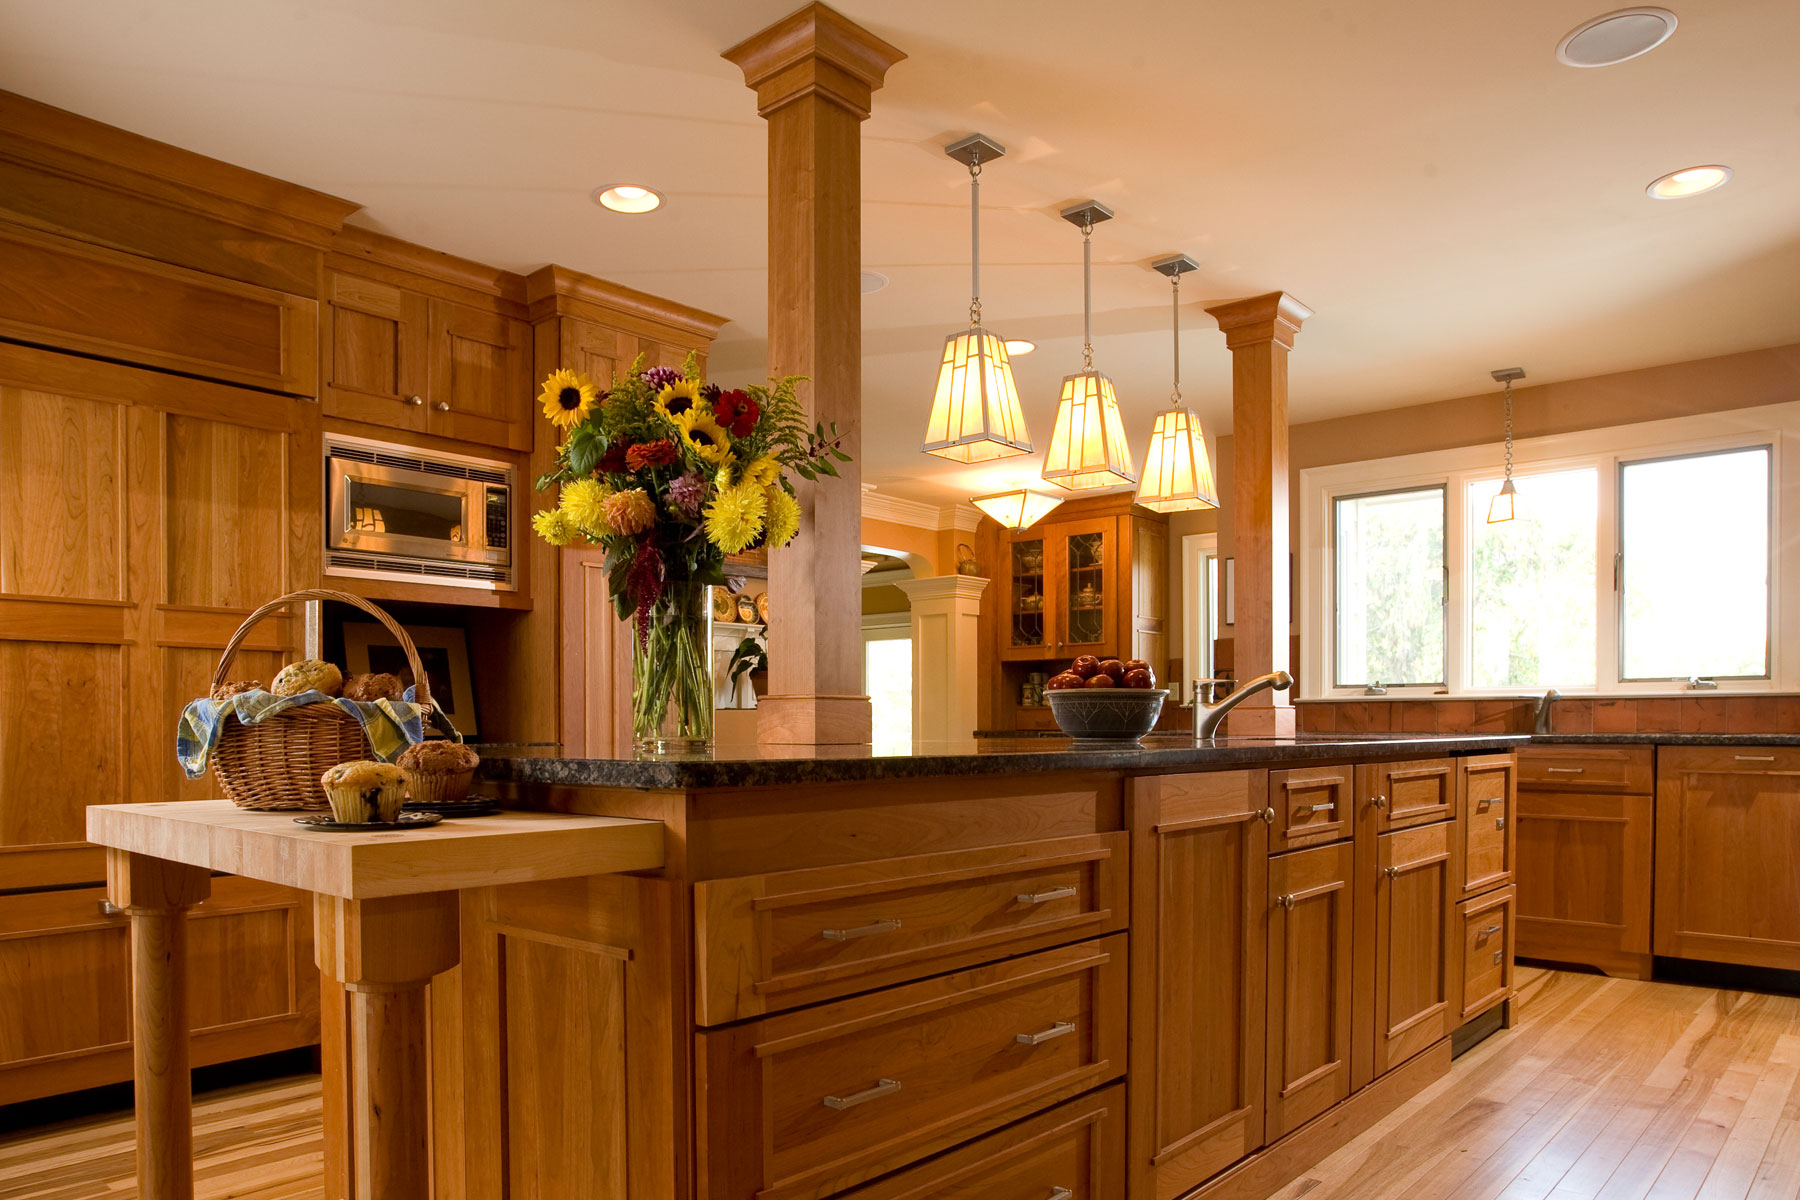 Craftsman style kitchen with rich wood cabinets